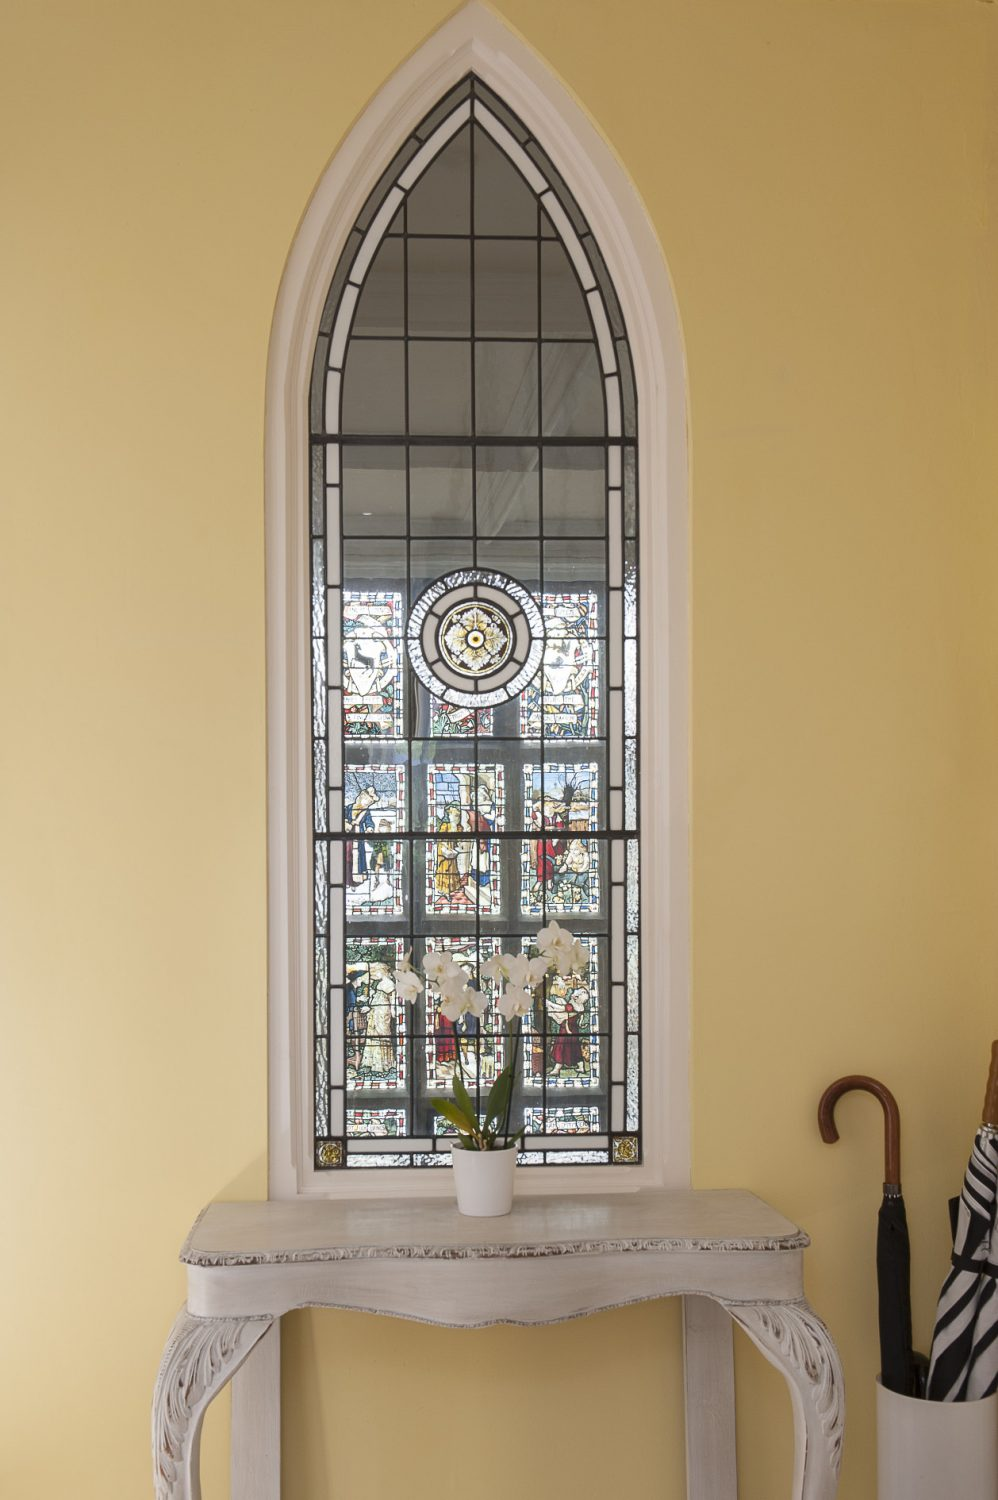 In the hallway is perhaps Dan's pièce de résistance, a superb Gothic stained glass window through which one has a superb view of the monumental window on the main staircase below